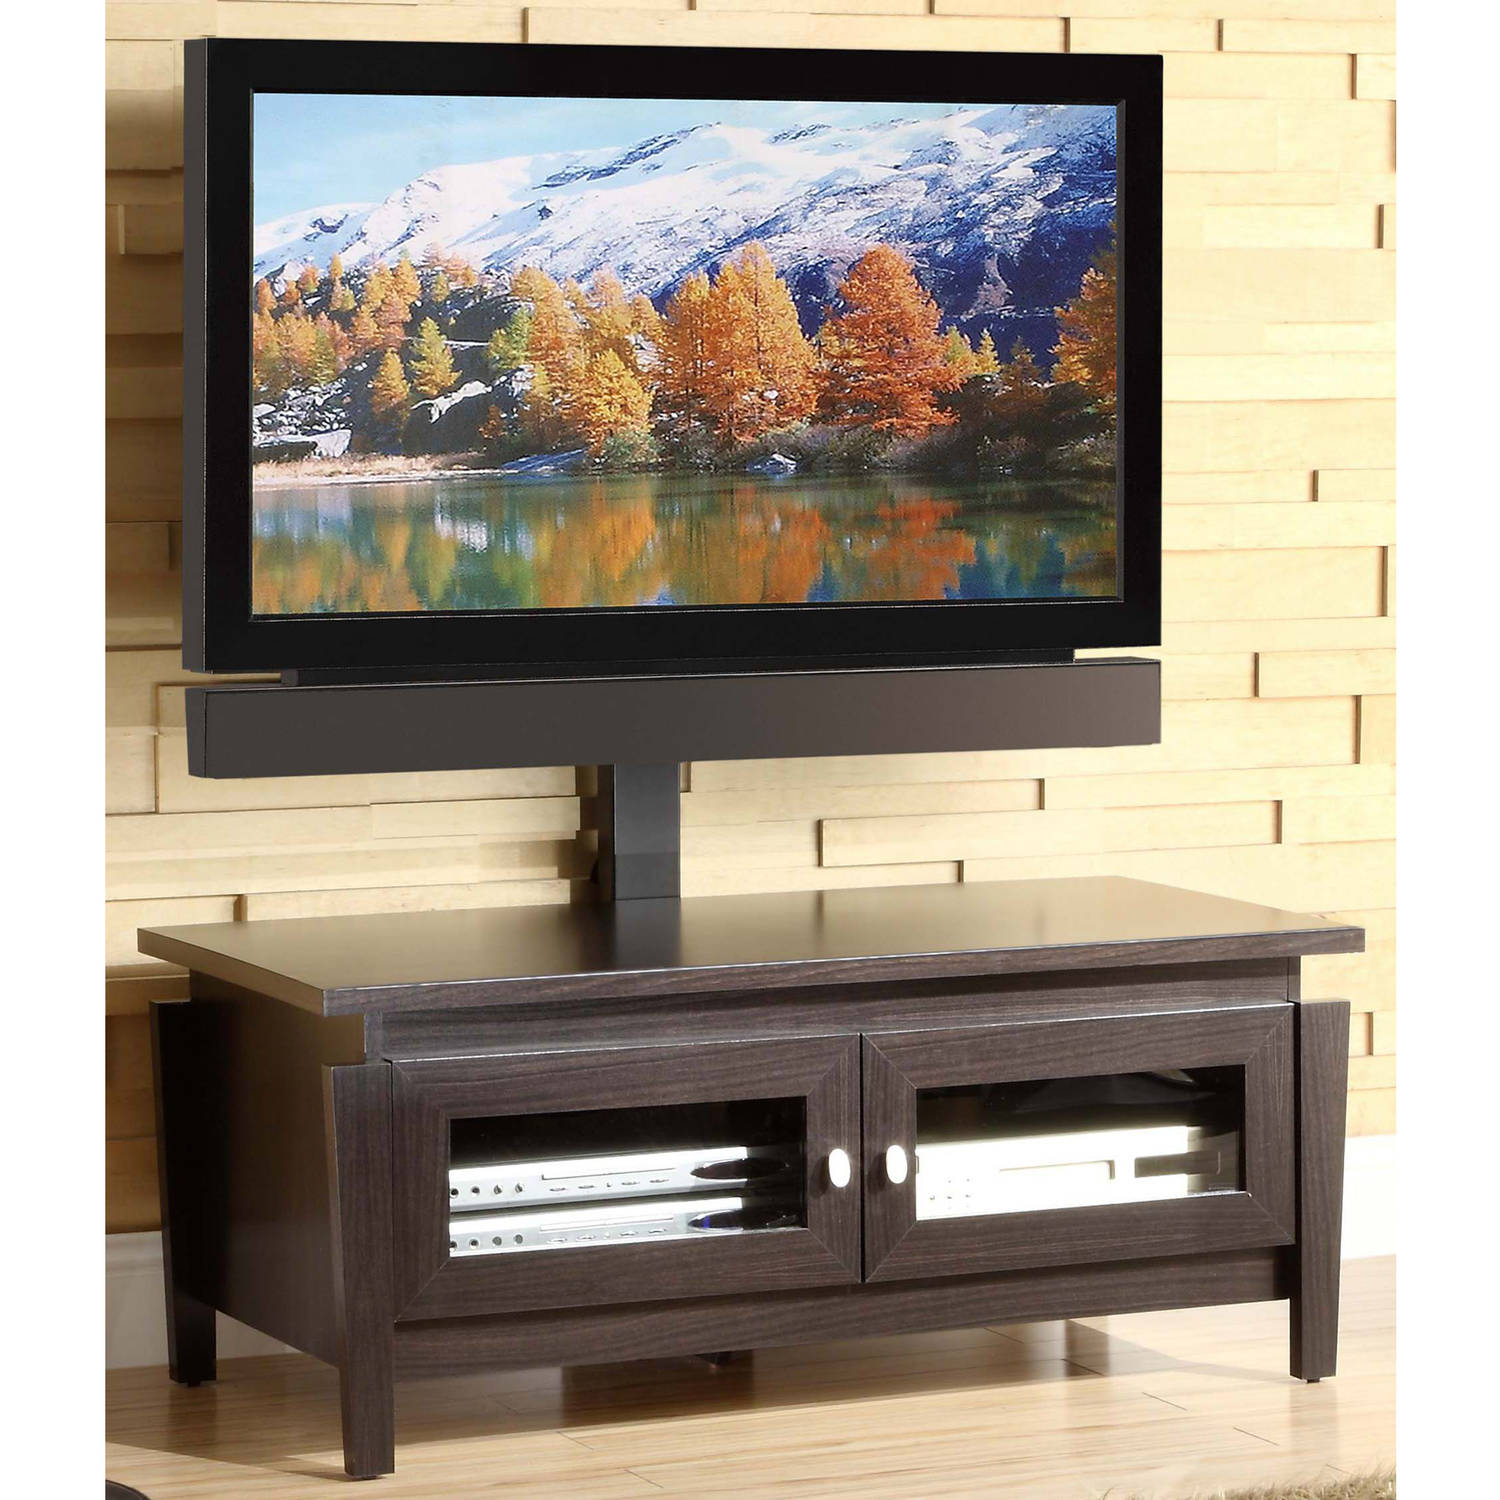 Table De Television Awesome Table De Television With Table De  # Meubles De Television